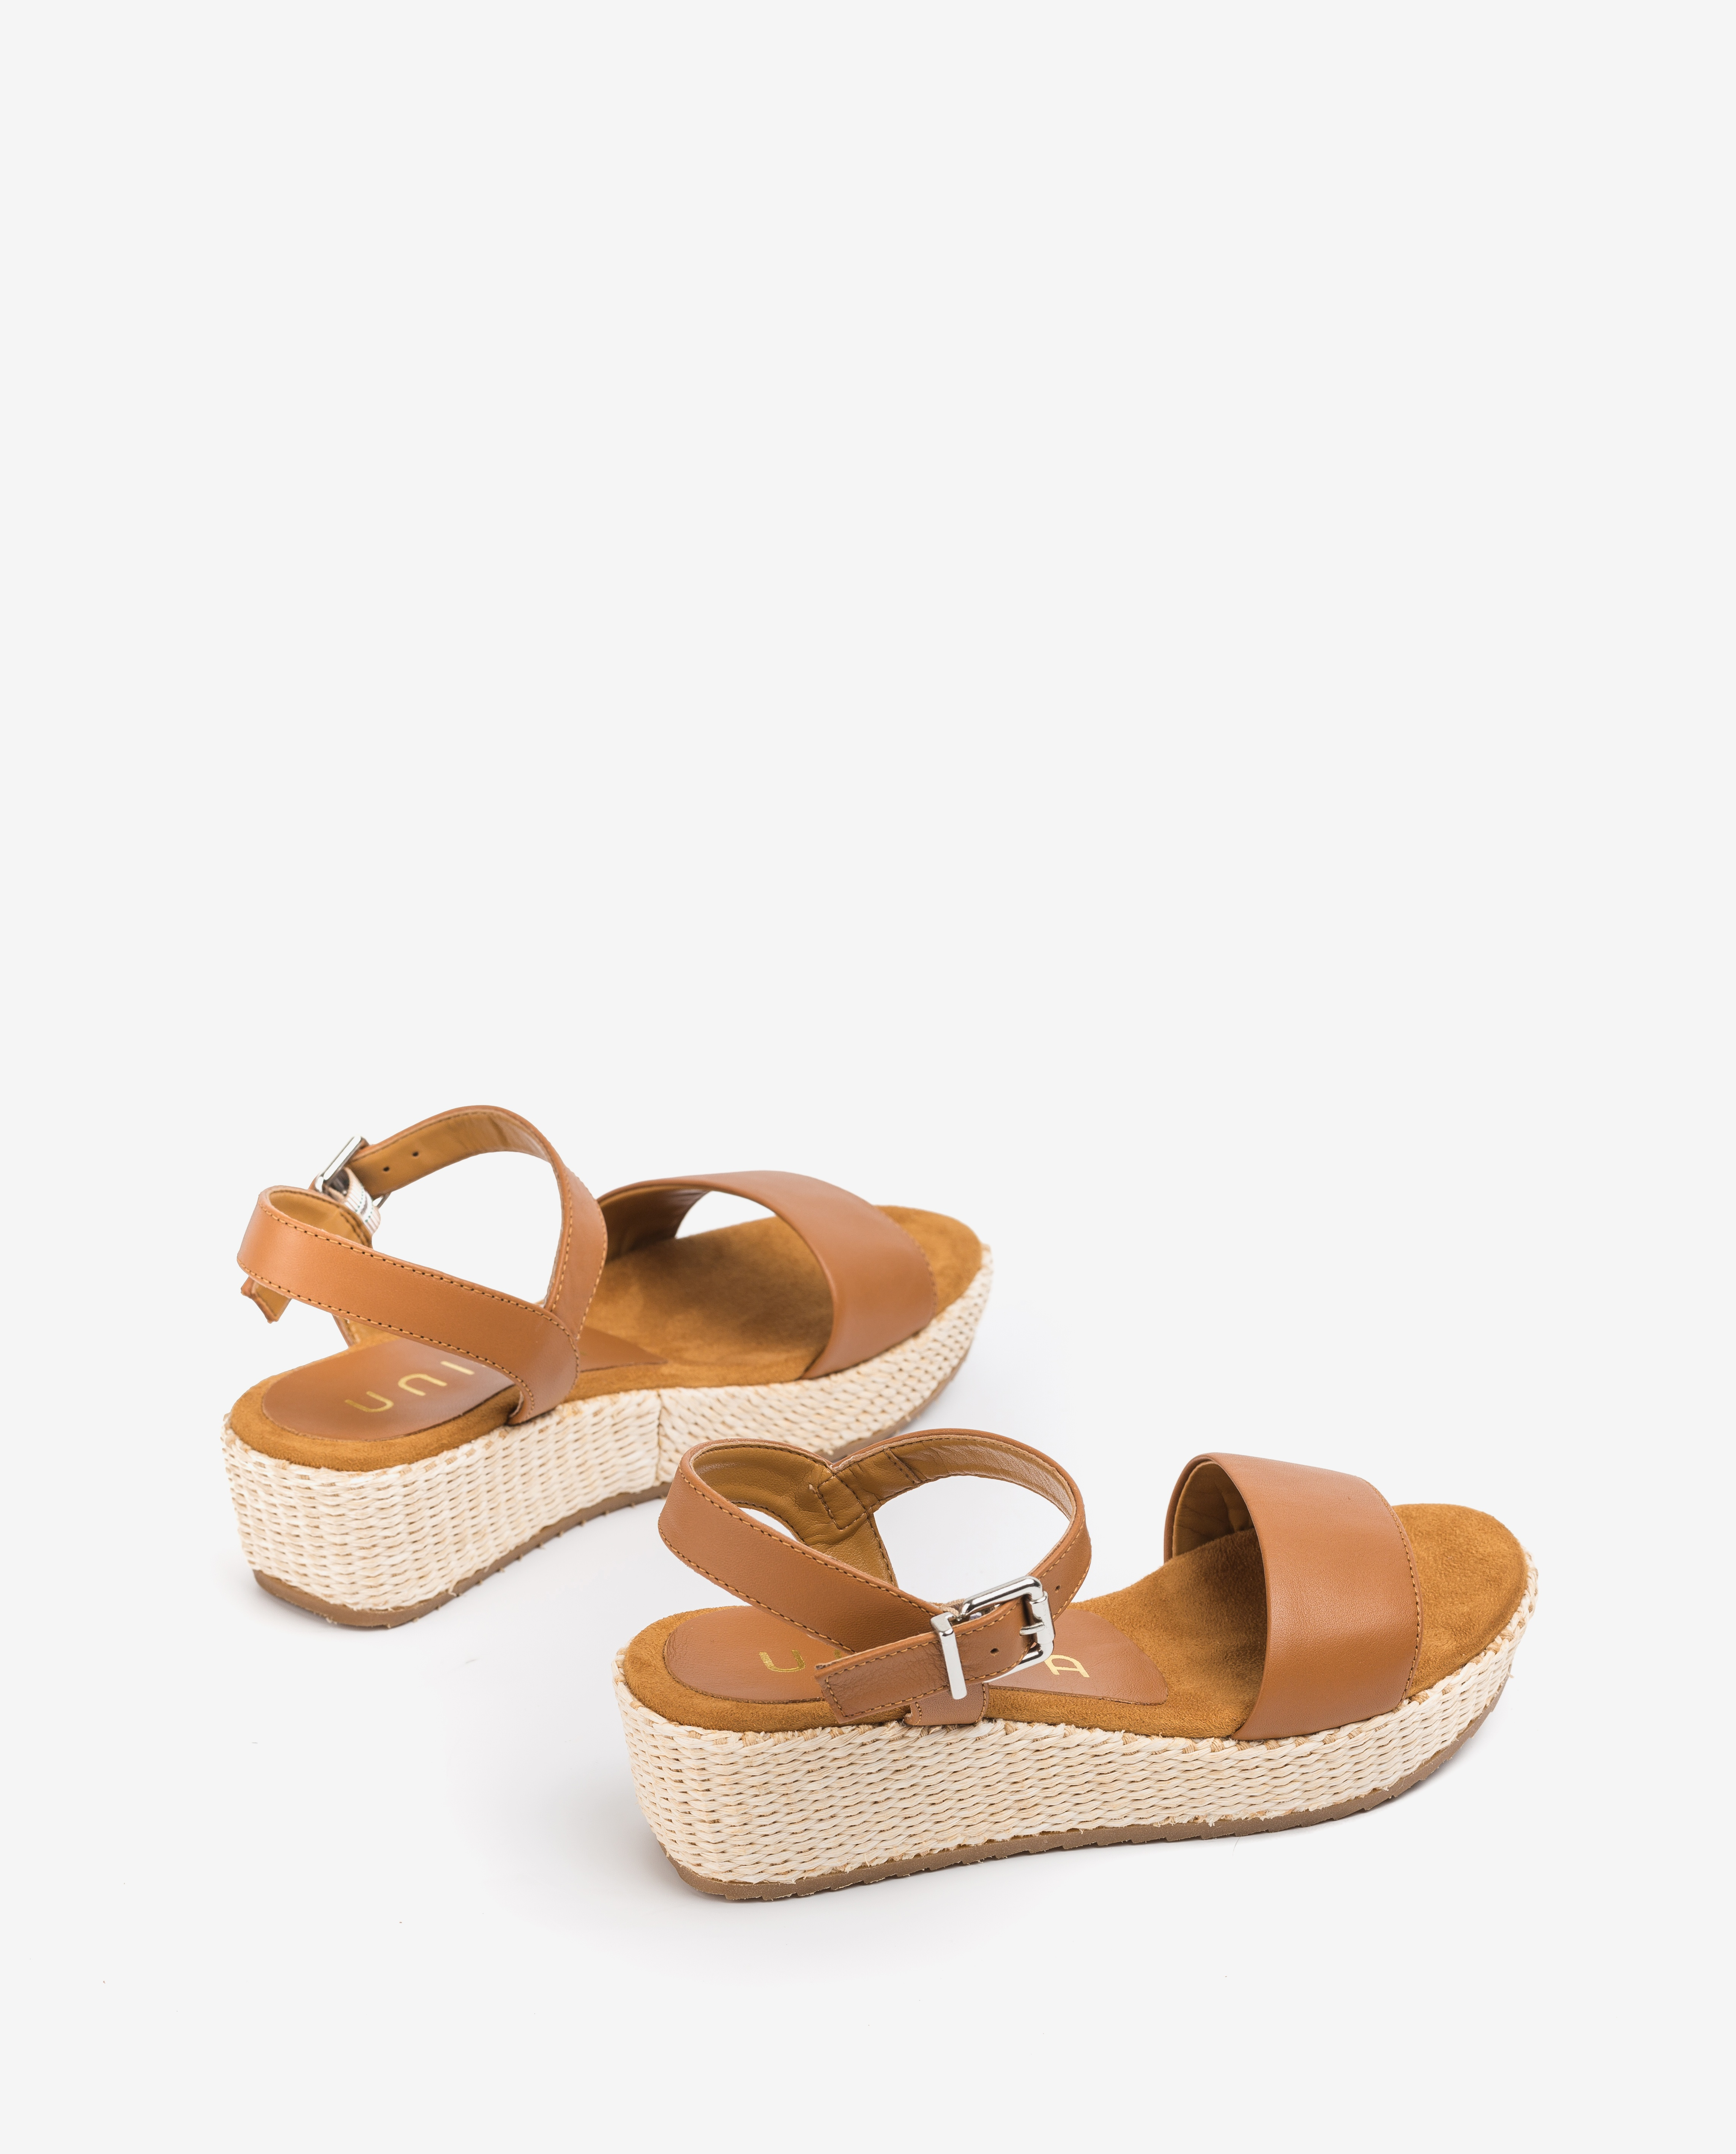 UNISA Little girl leather wedge sandals TERETE_20_R_NT bisquit 2